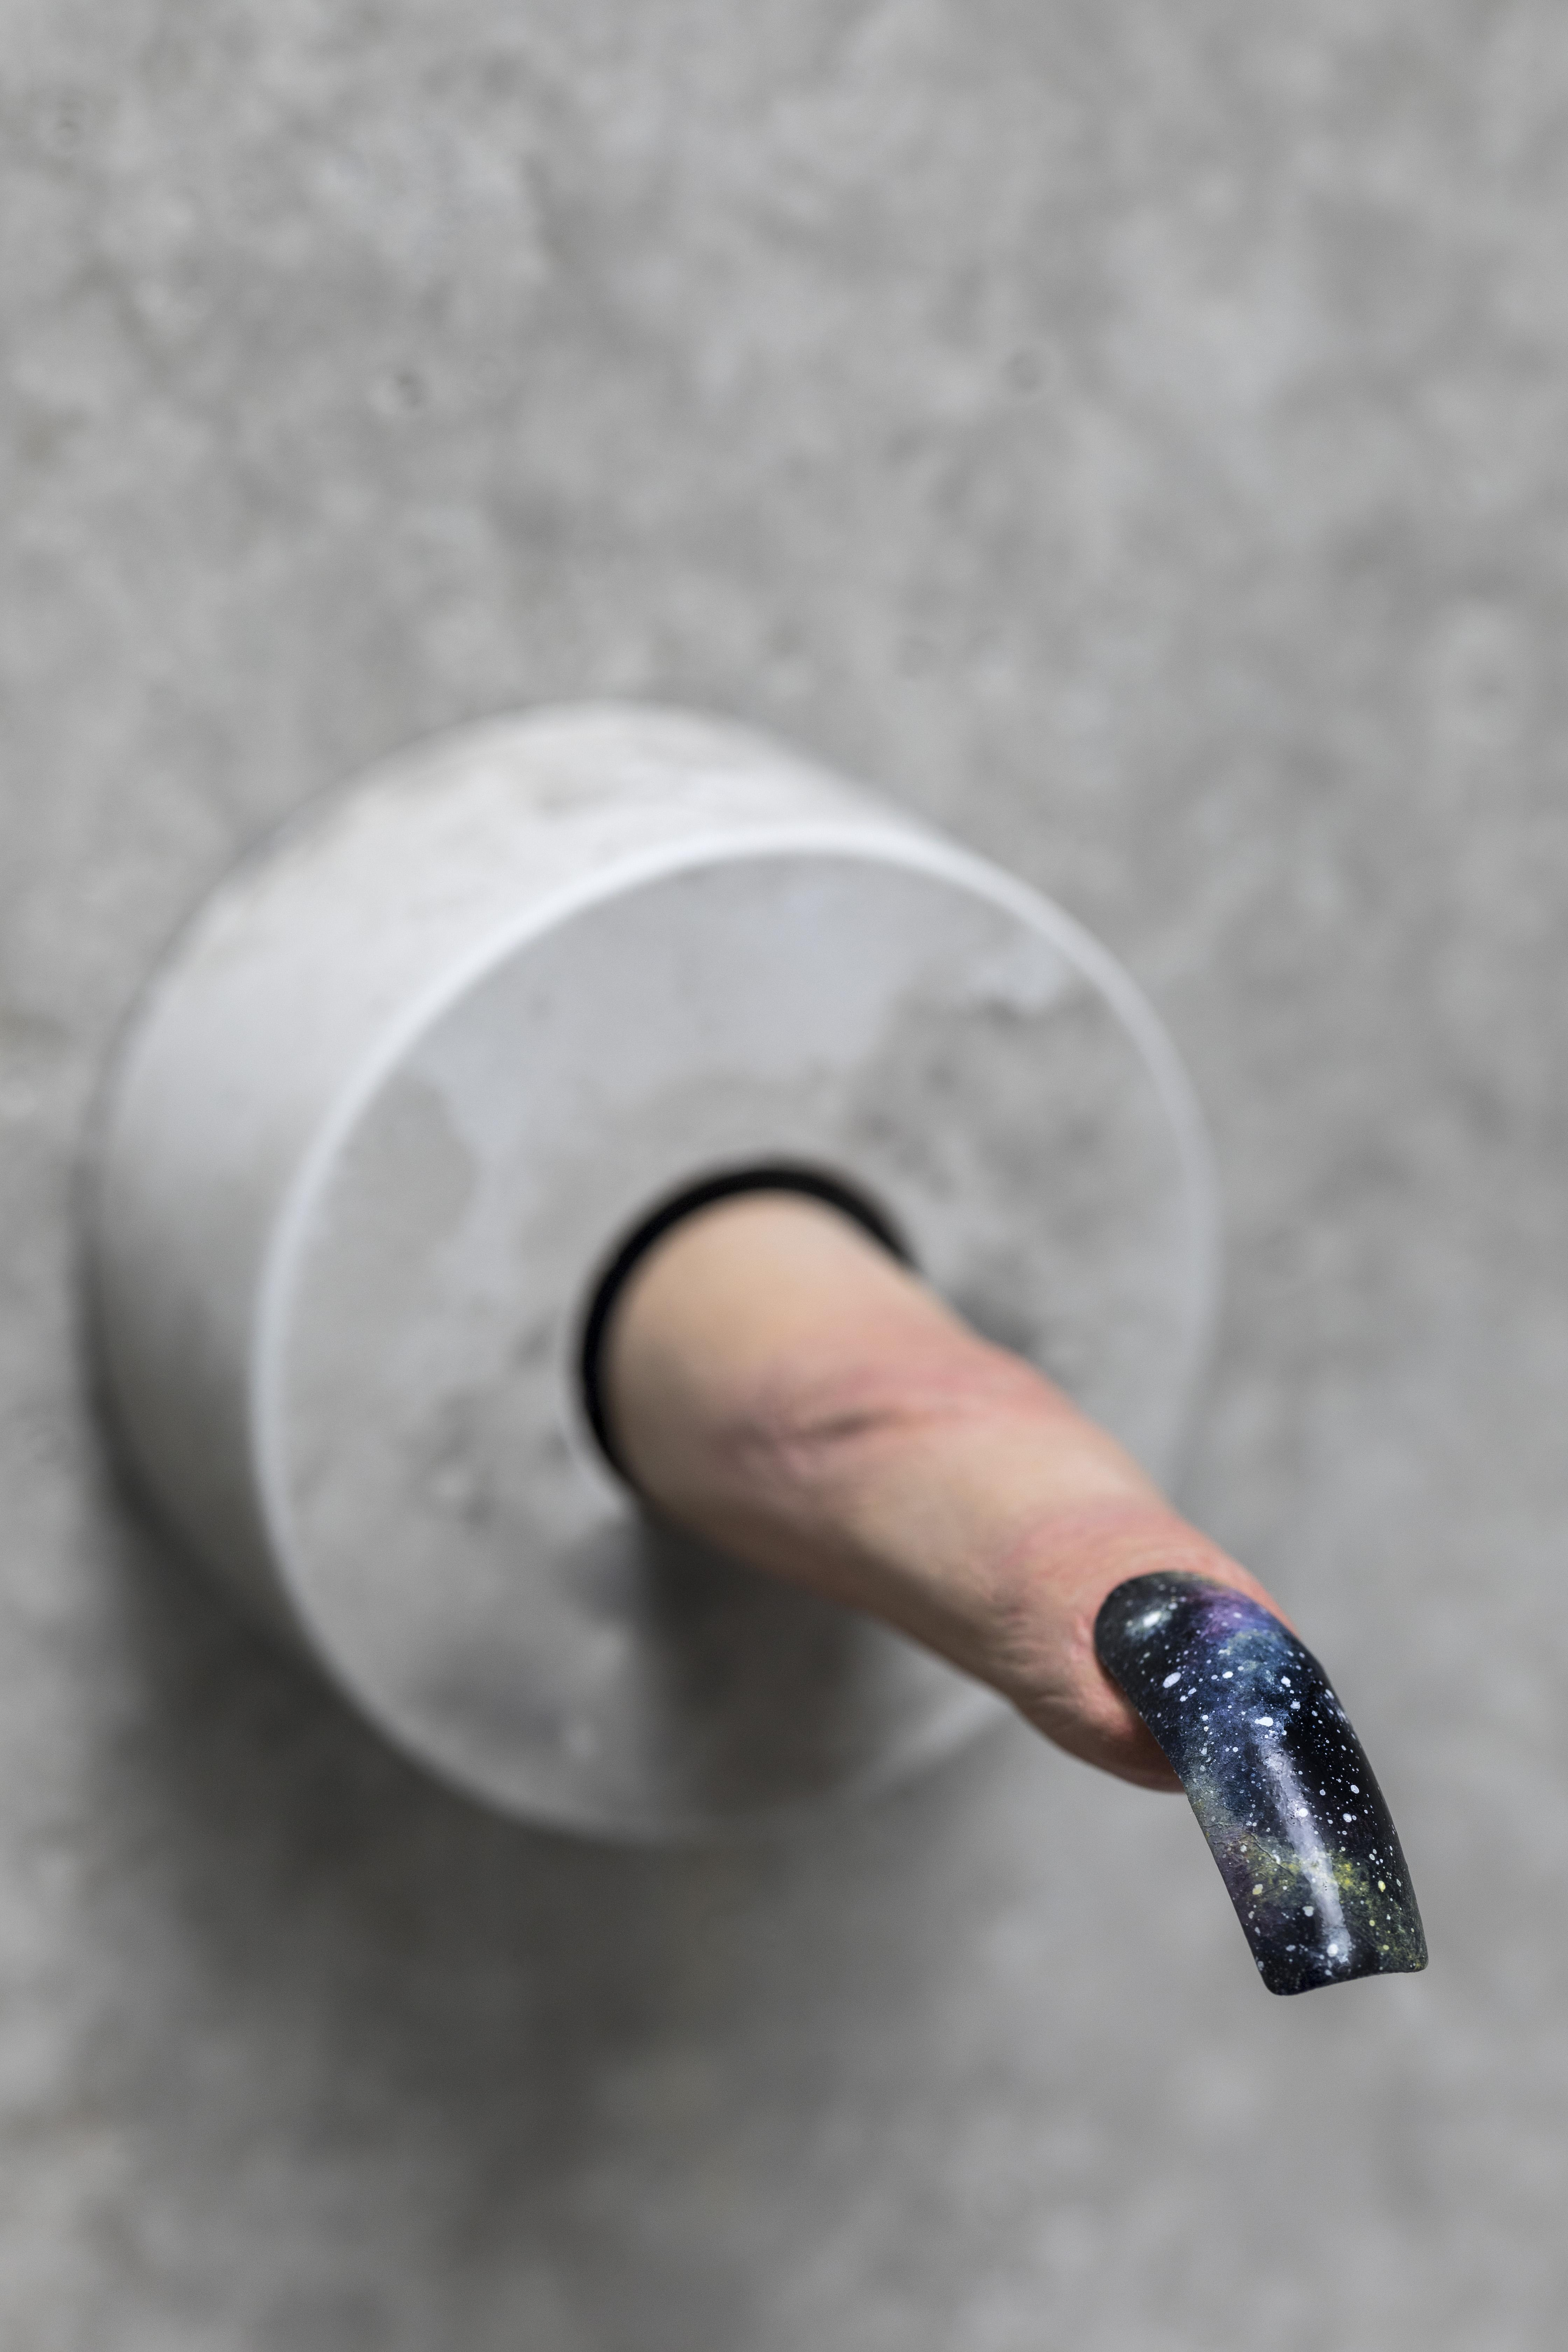 A light-skinned finger ending in a long fingernail extends out from a gray wall. The fingernail is painted black, with details similar to a night sky or galaxy.